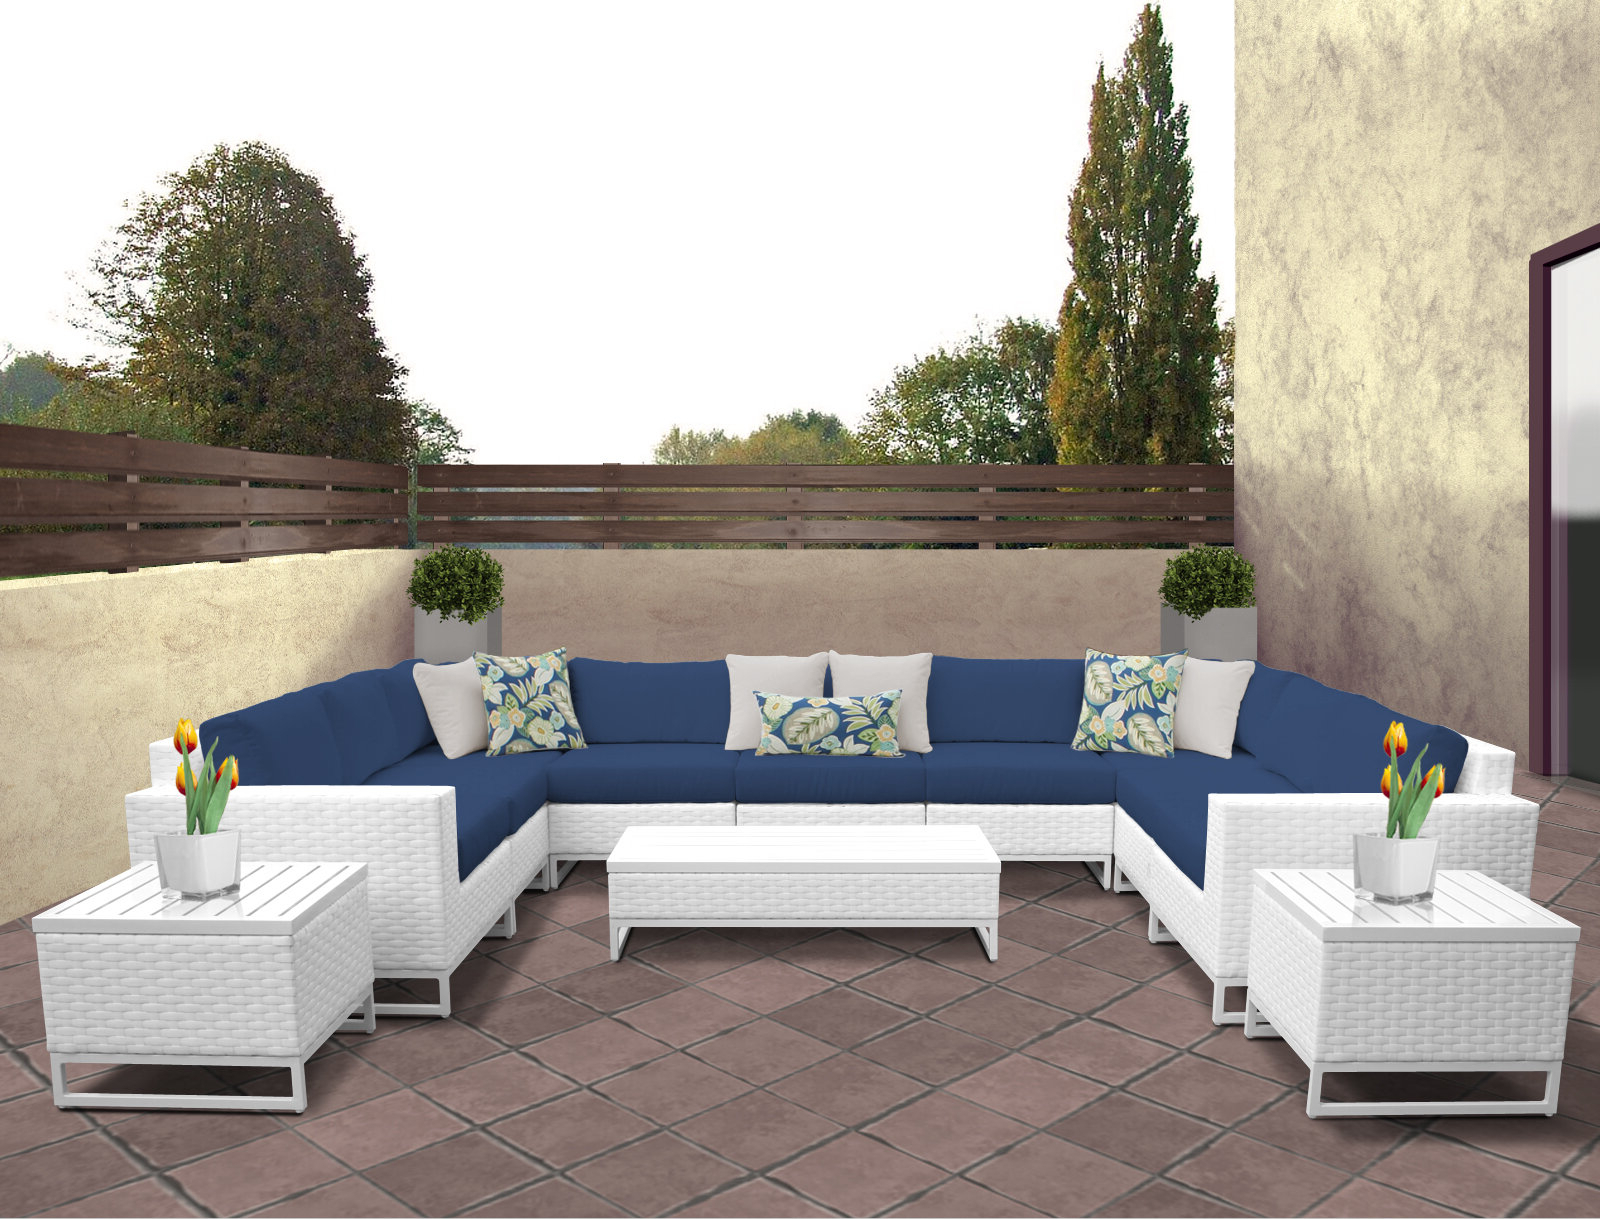 Menifee Patio Sofas With Cushions Inside Well Liked Menifee 12 Piece Sectional Seating Group With Cushions (View 3 of 25)